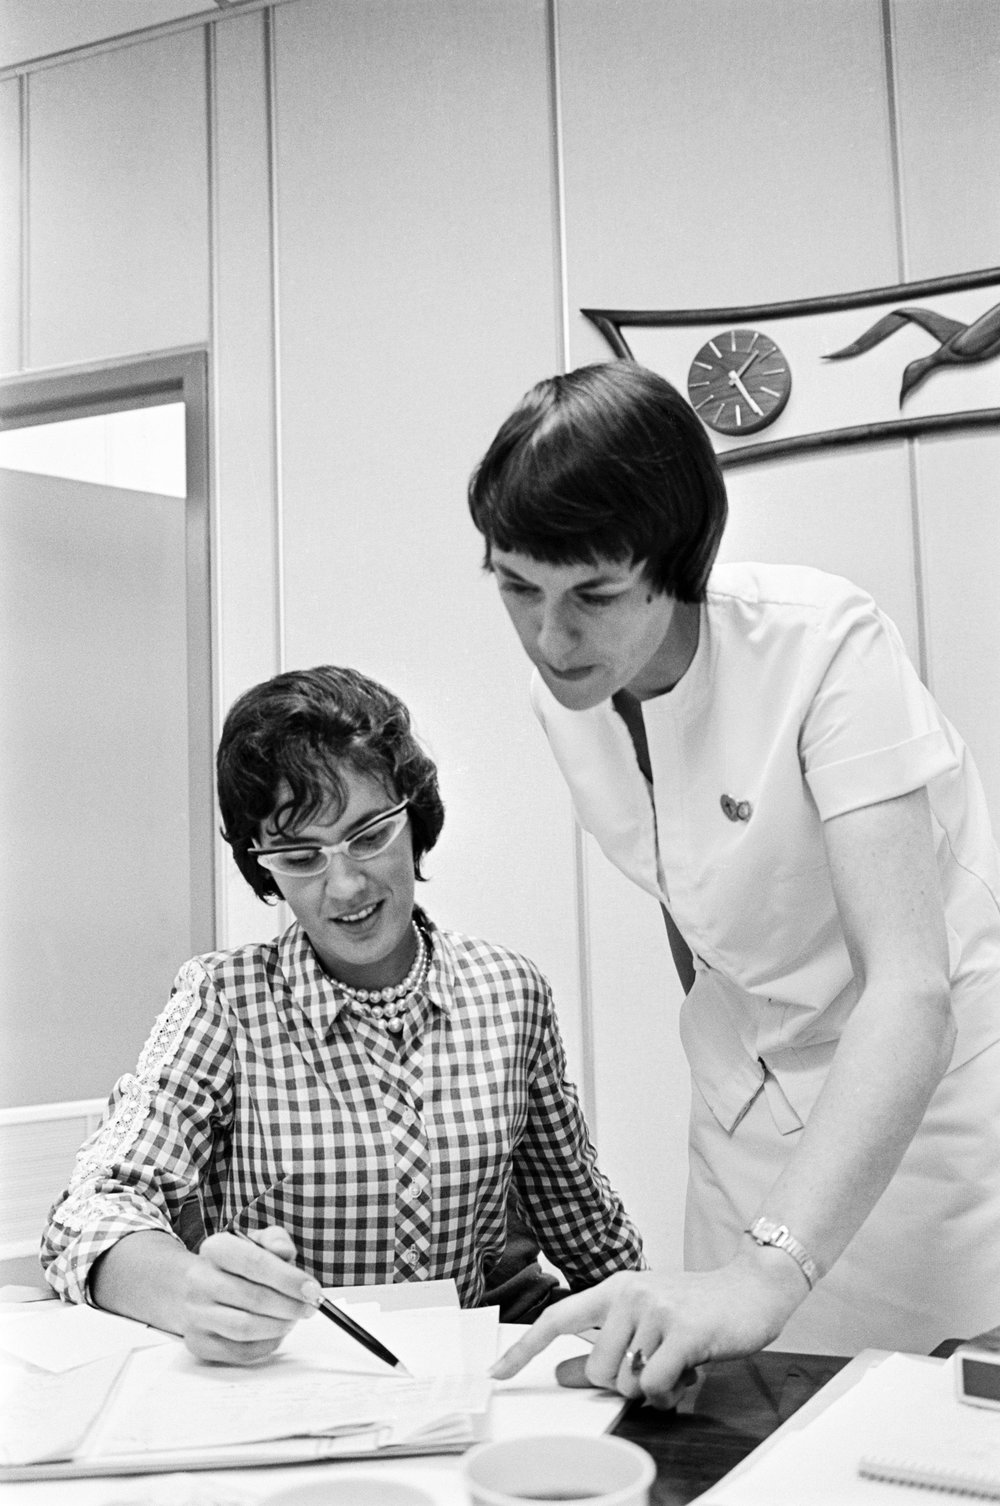 Dolores O' Hara prepares dental equipment for use in the preflight physical administered to Gemini-V Astronauts. CAPE KENNEDY, FL